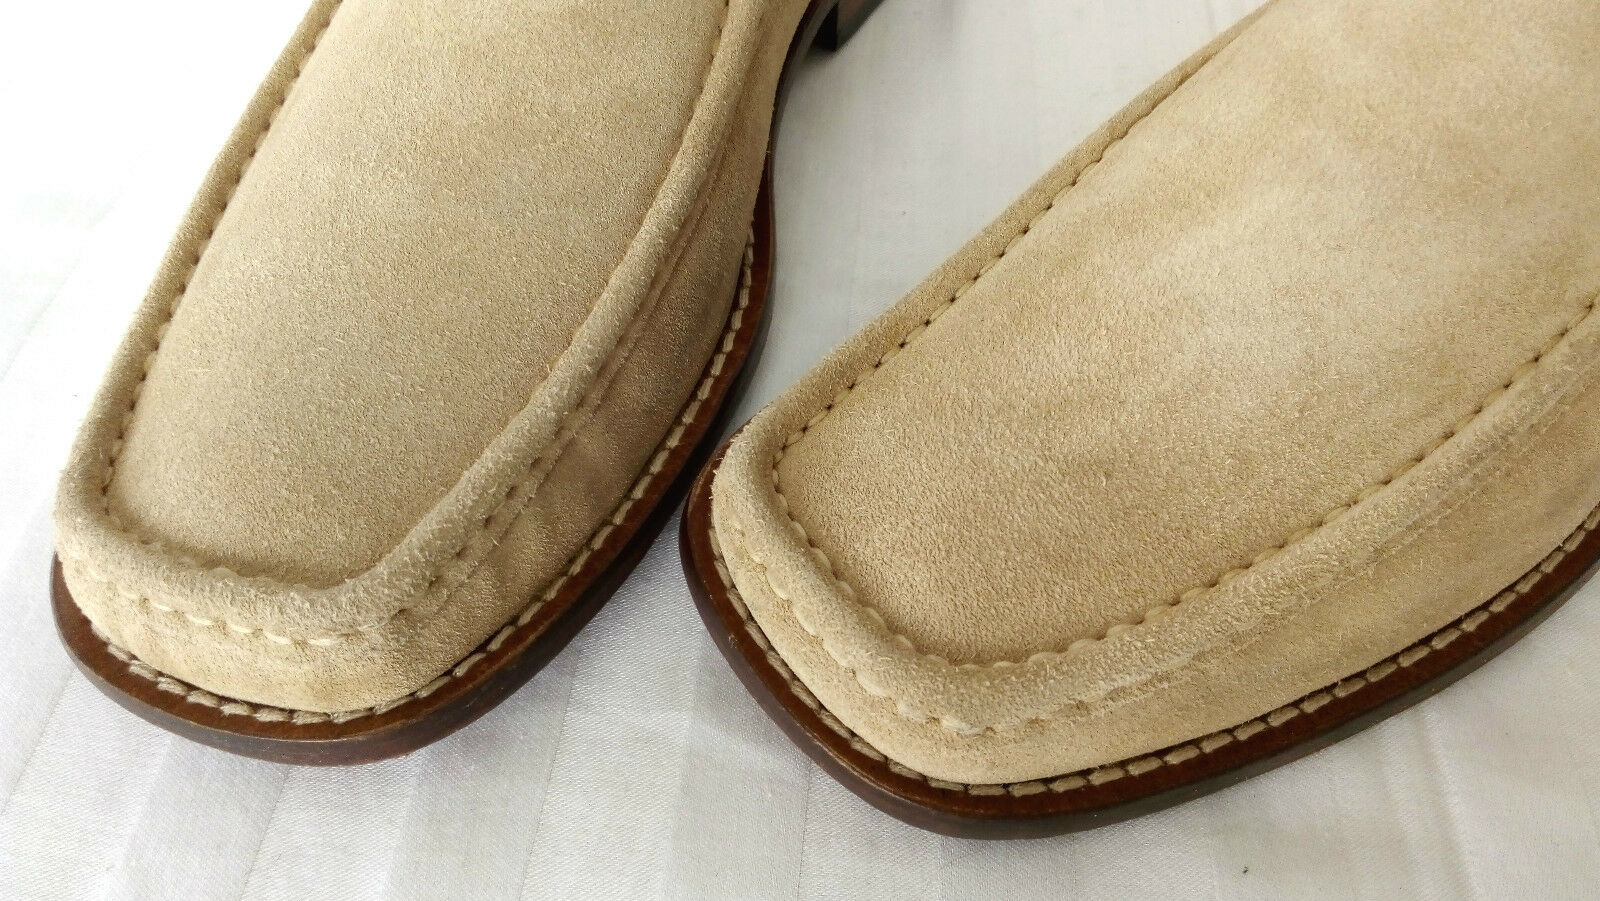 Authentic Highline Loafer Mokassin Slipper Wildleder Genähte Ledersohle 43-43,5